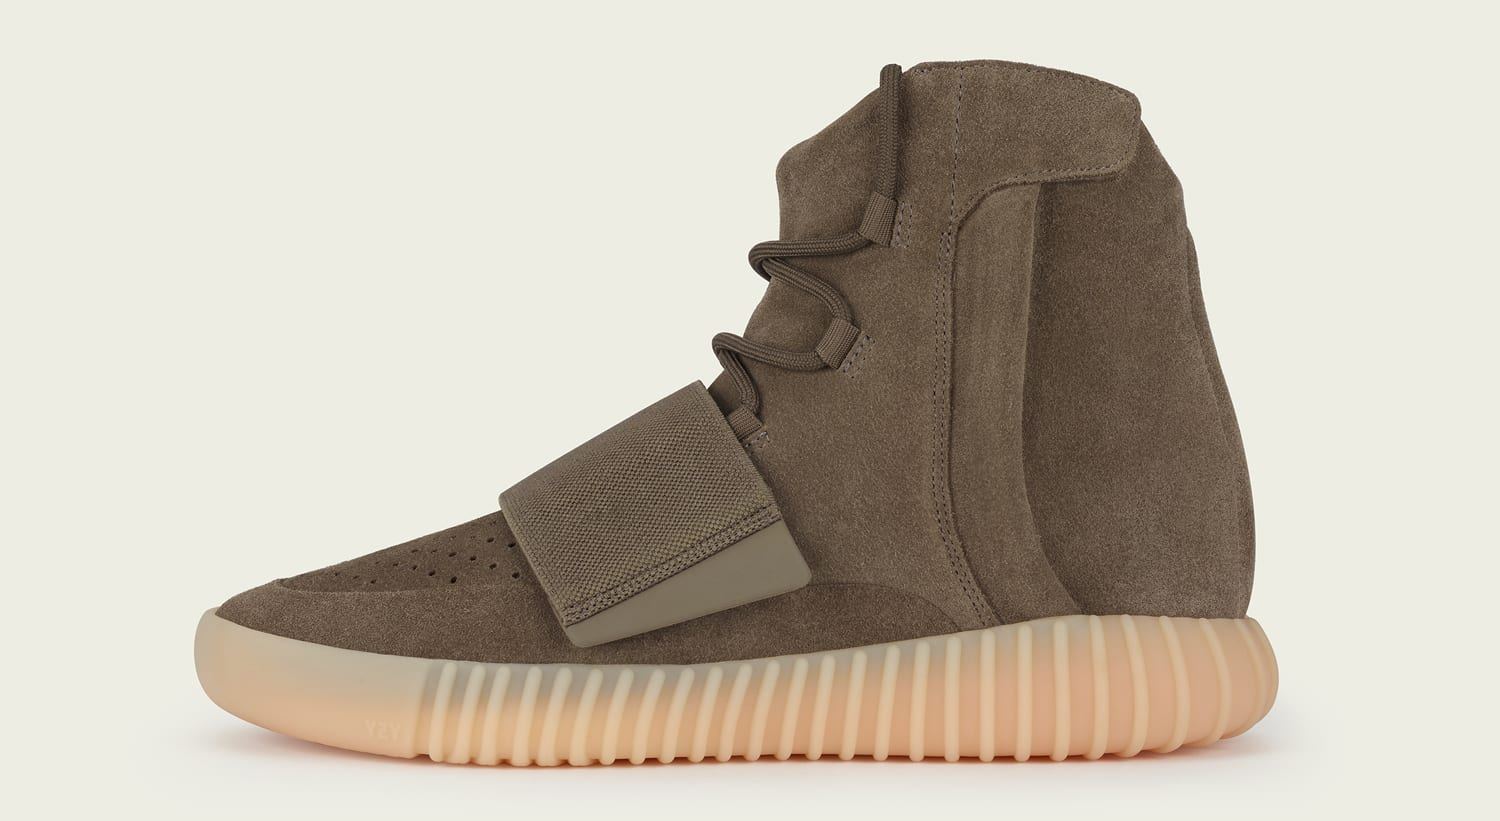 Chocolate Yeezy 750 Profile